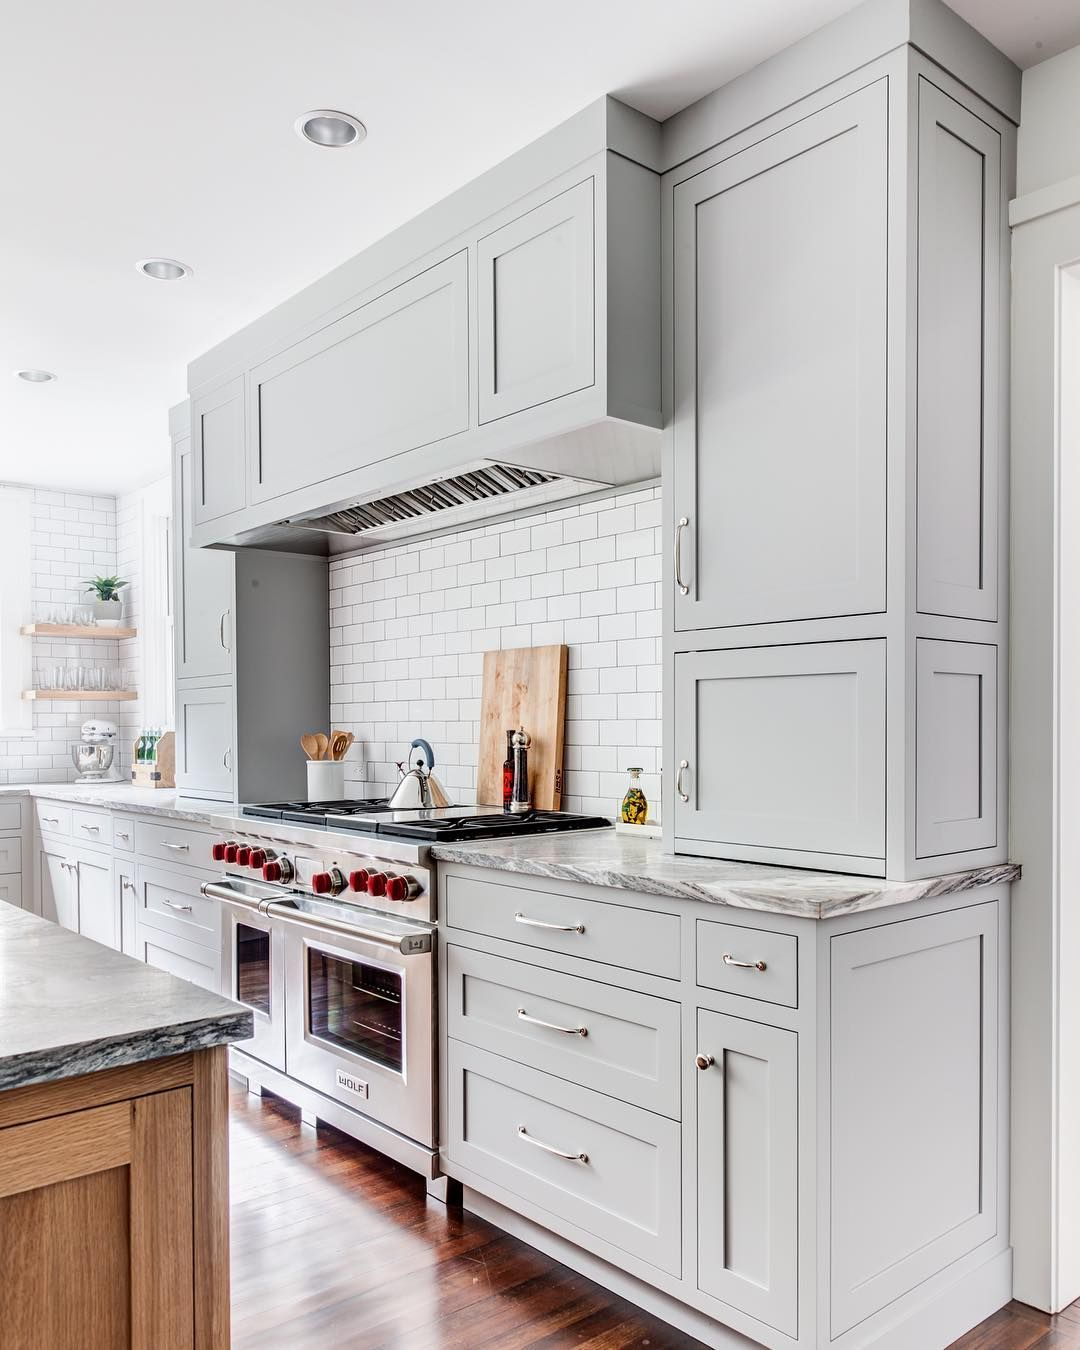 Benjamin Moore Kitchen Cabinet Colors Cabinet Color Is Benjamin Moore Coventry Gray Cabinet